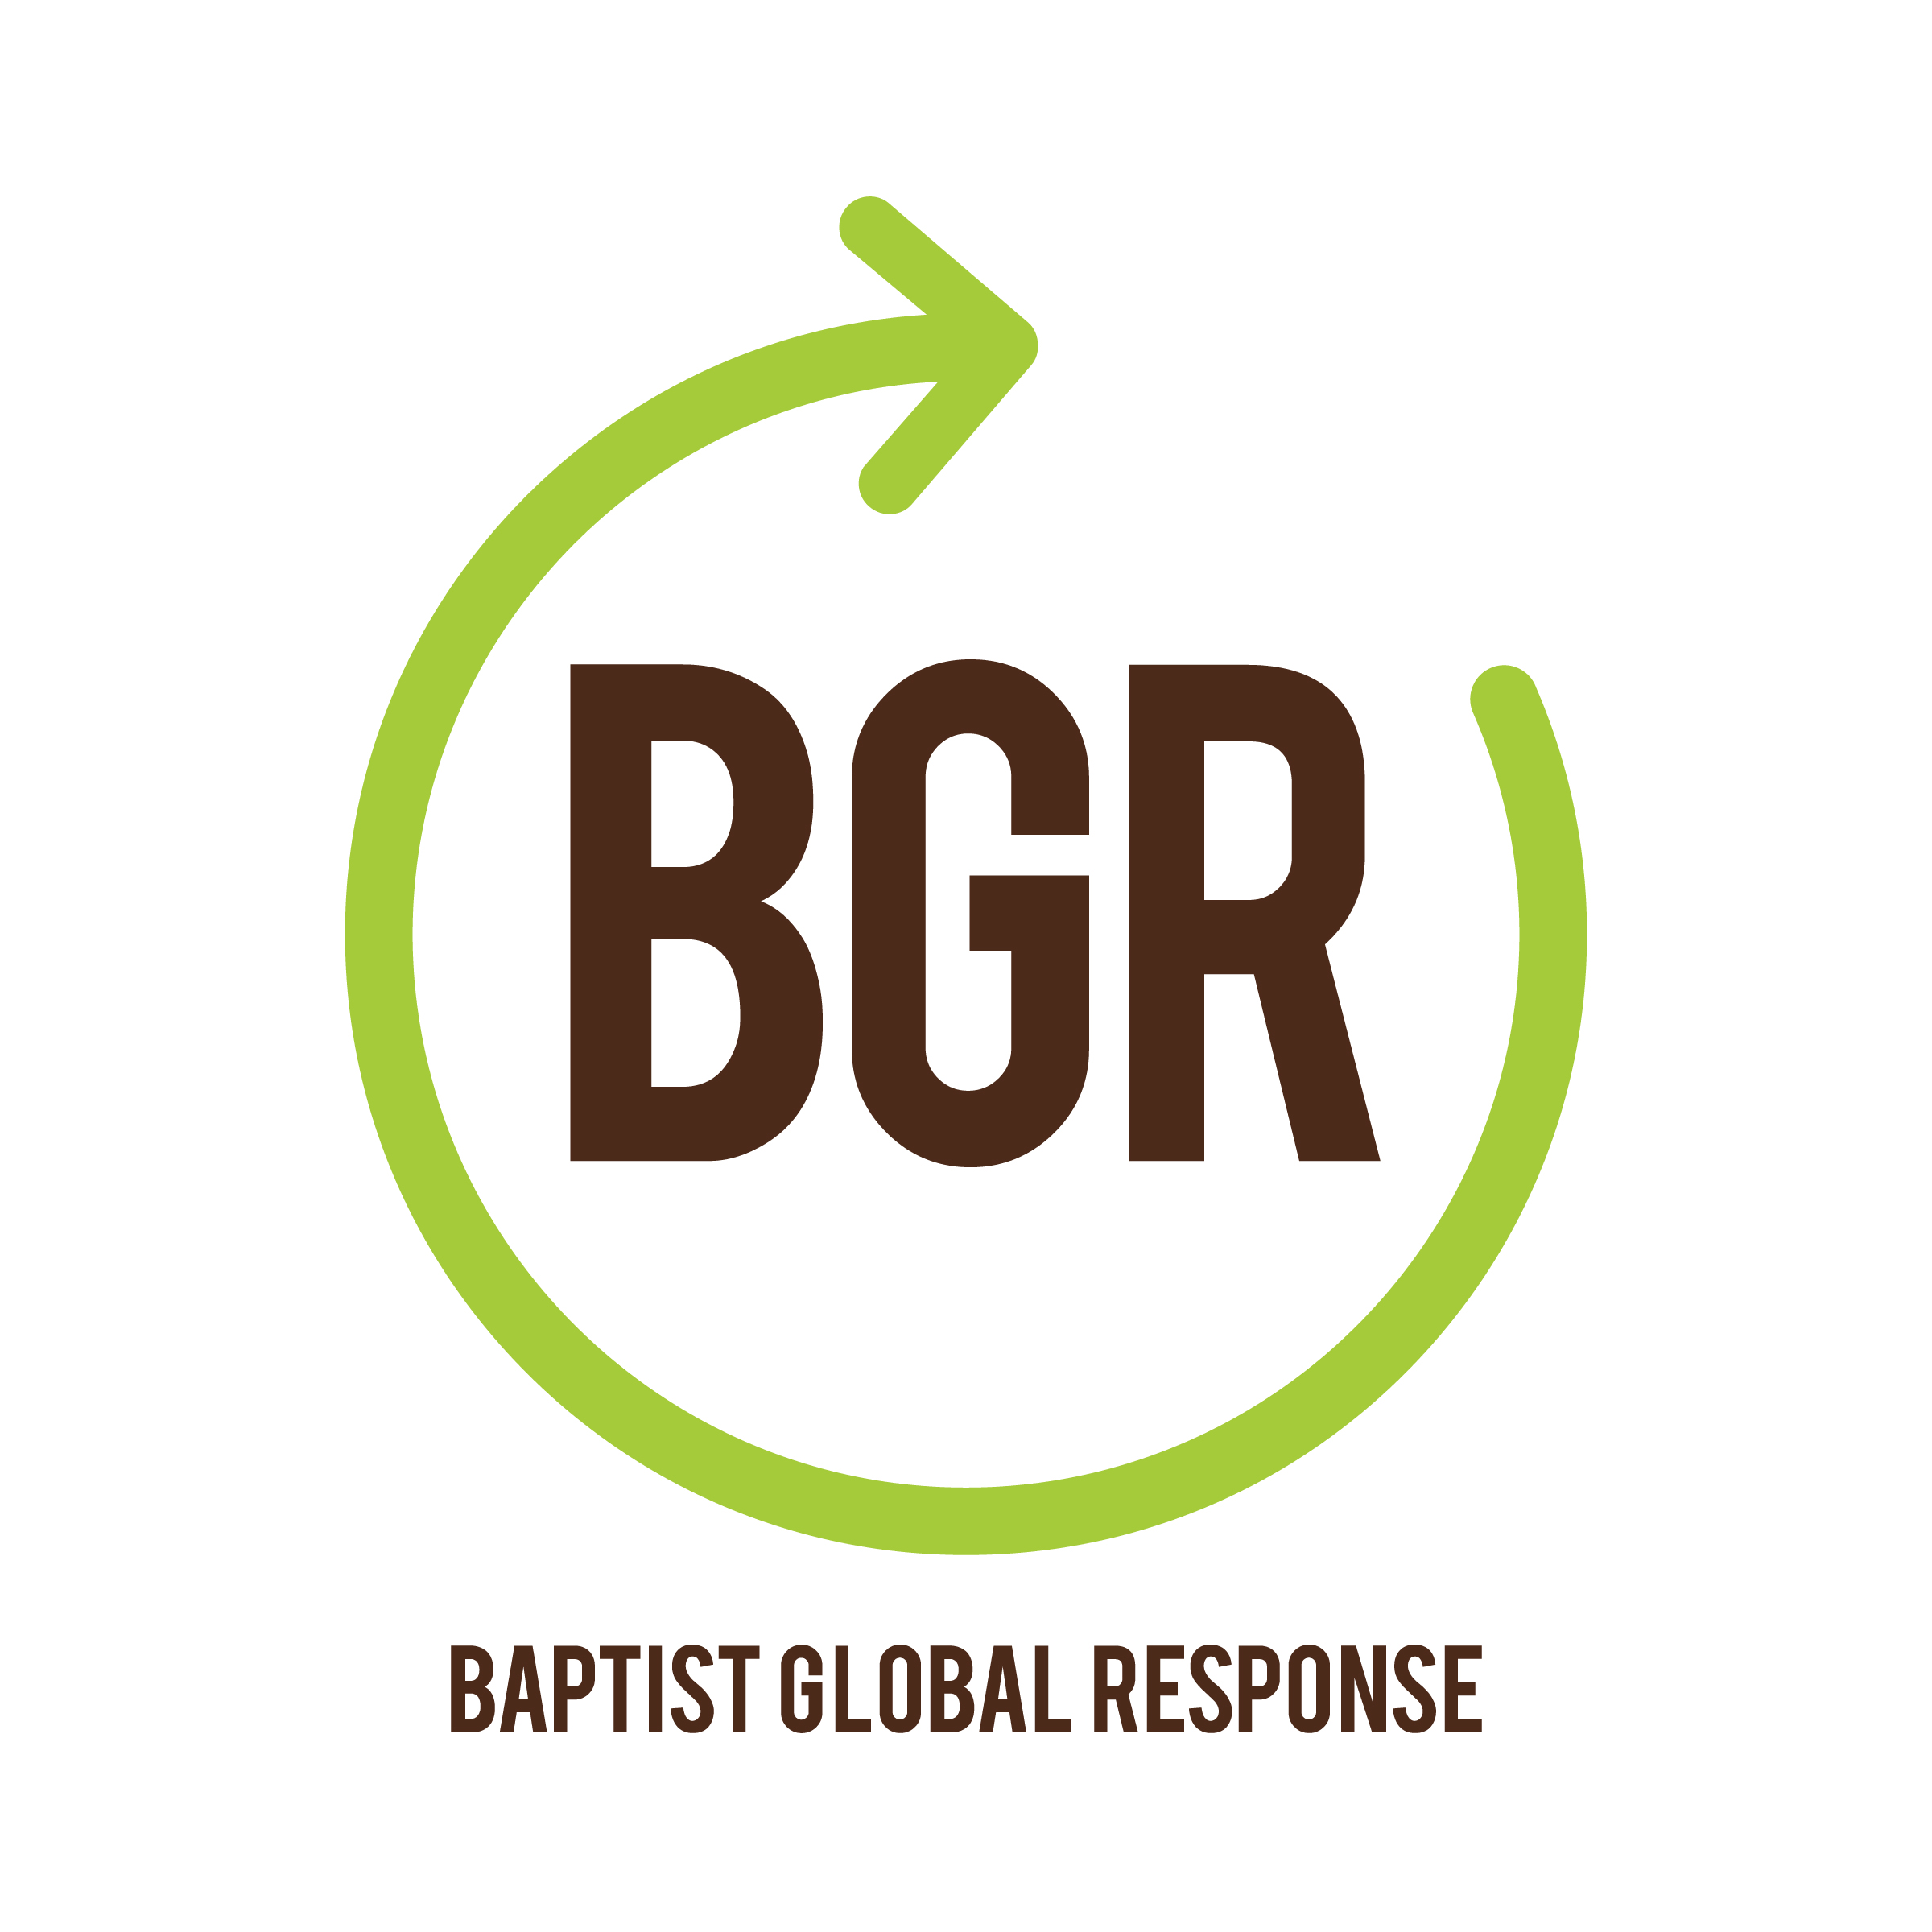 Instructions for packing buckets baptist global response.